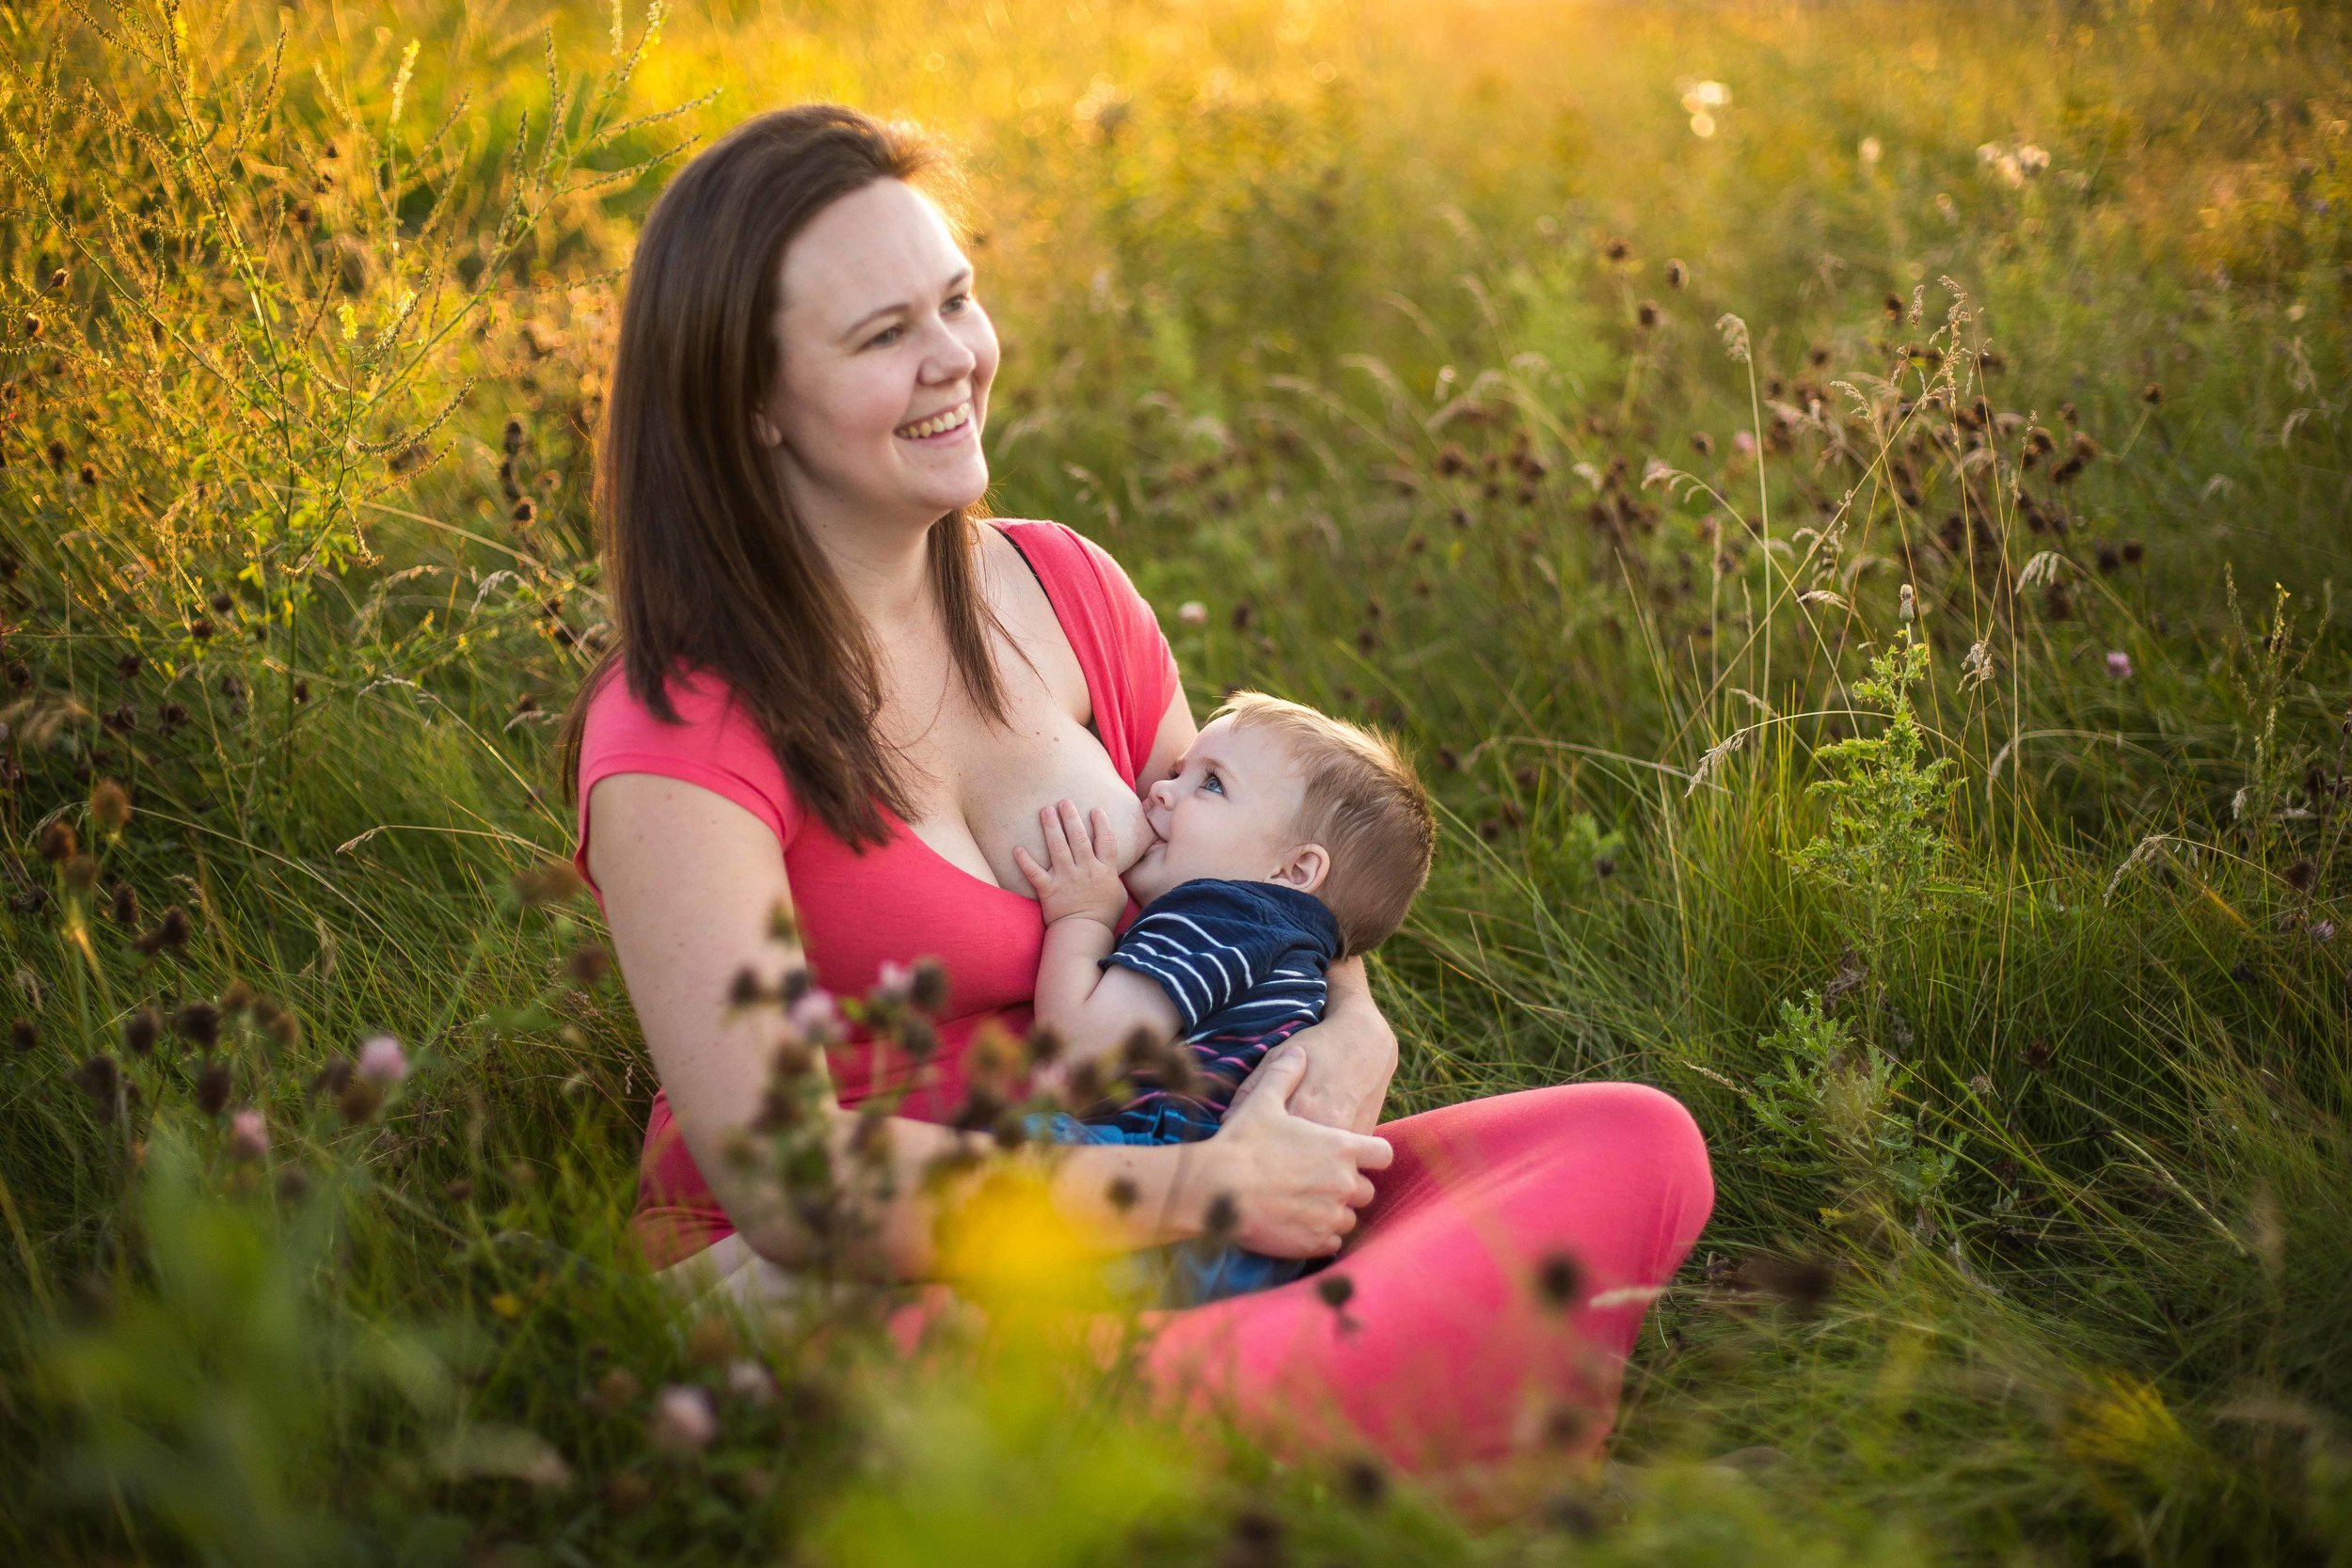 edmonton motherhood photographer-13.jpg